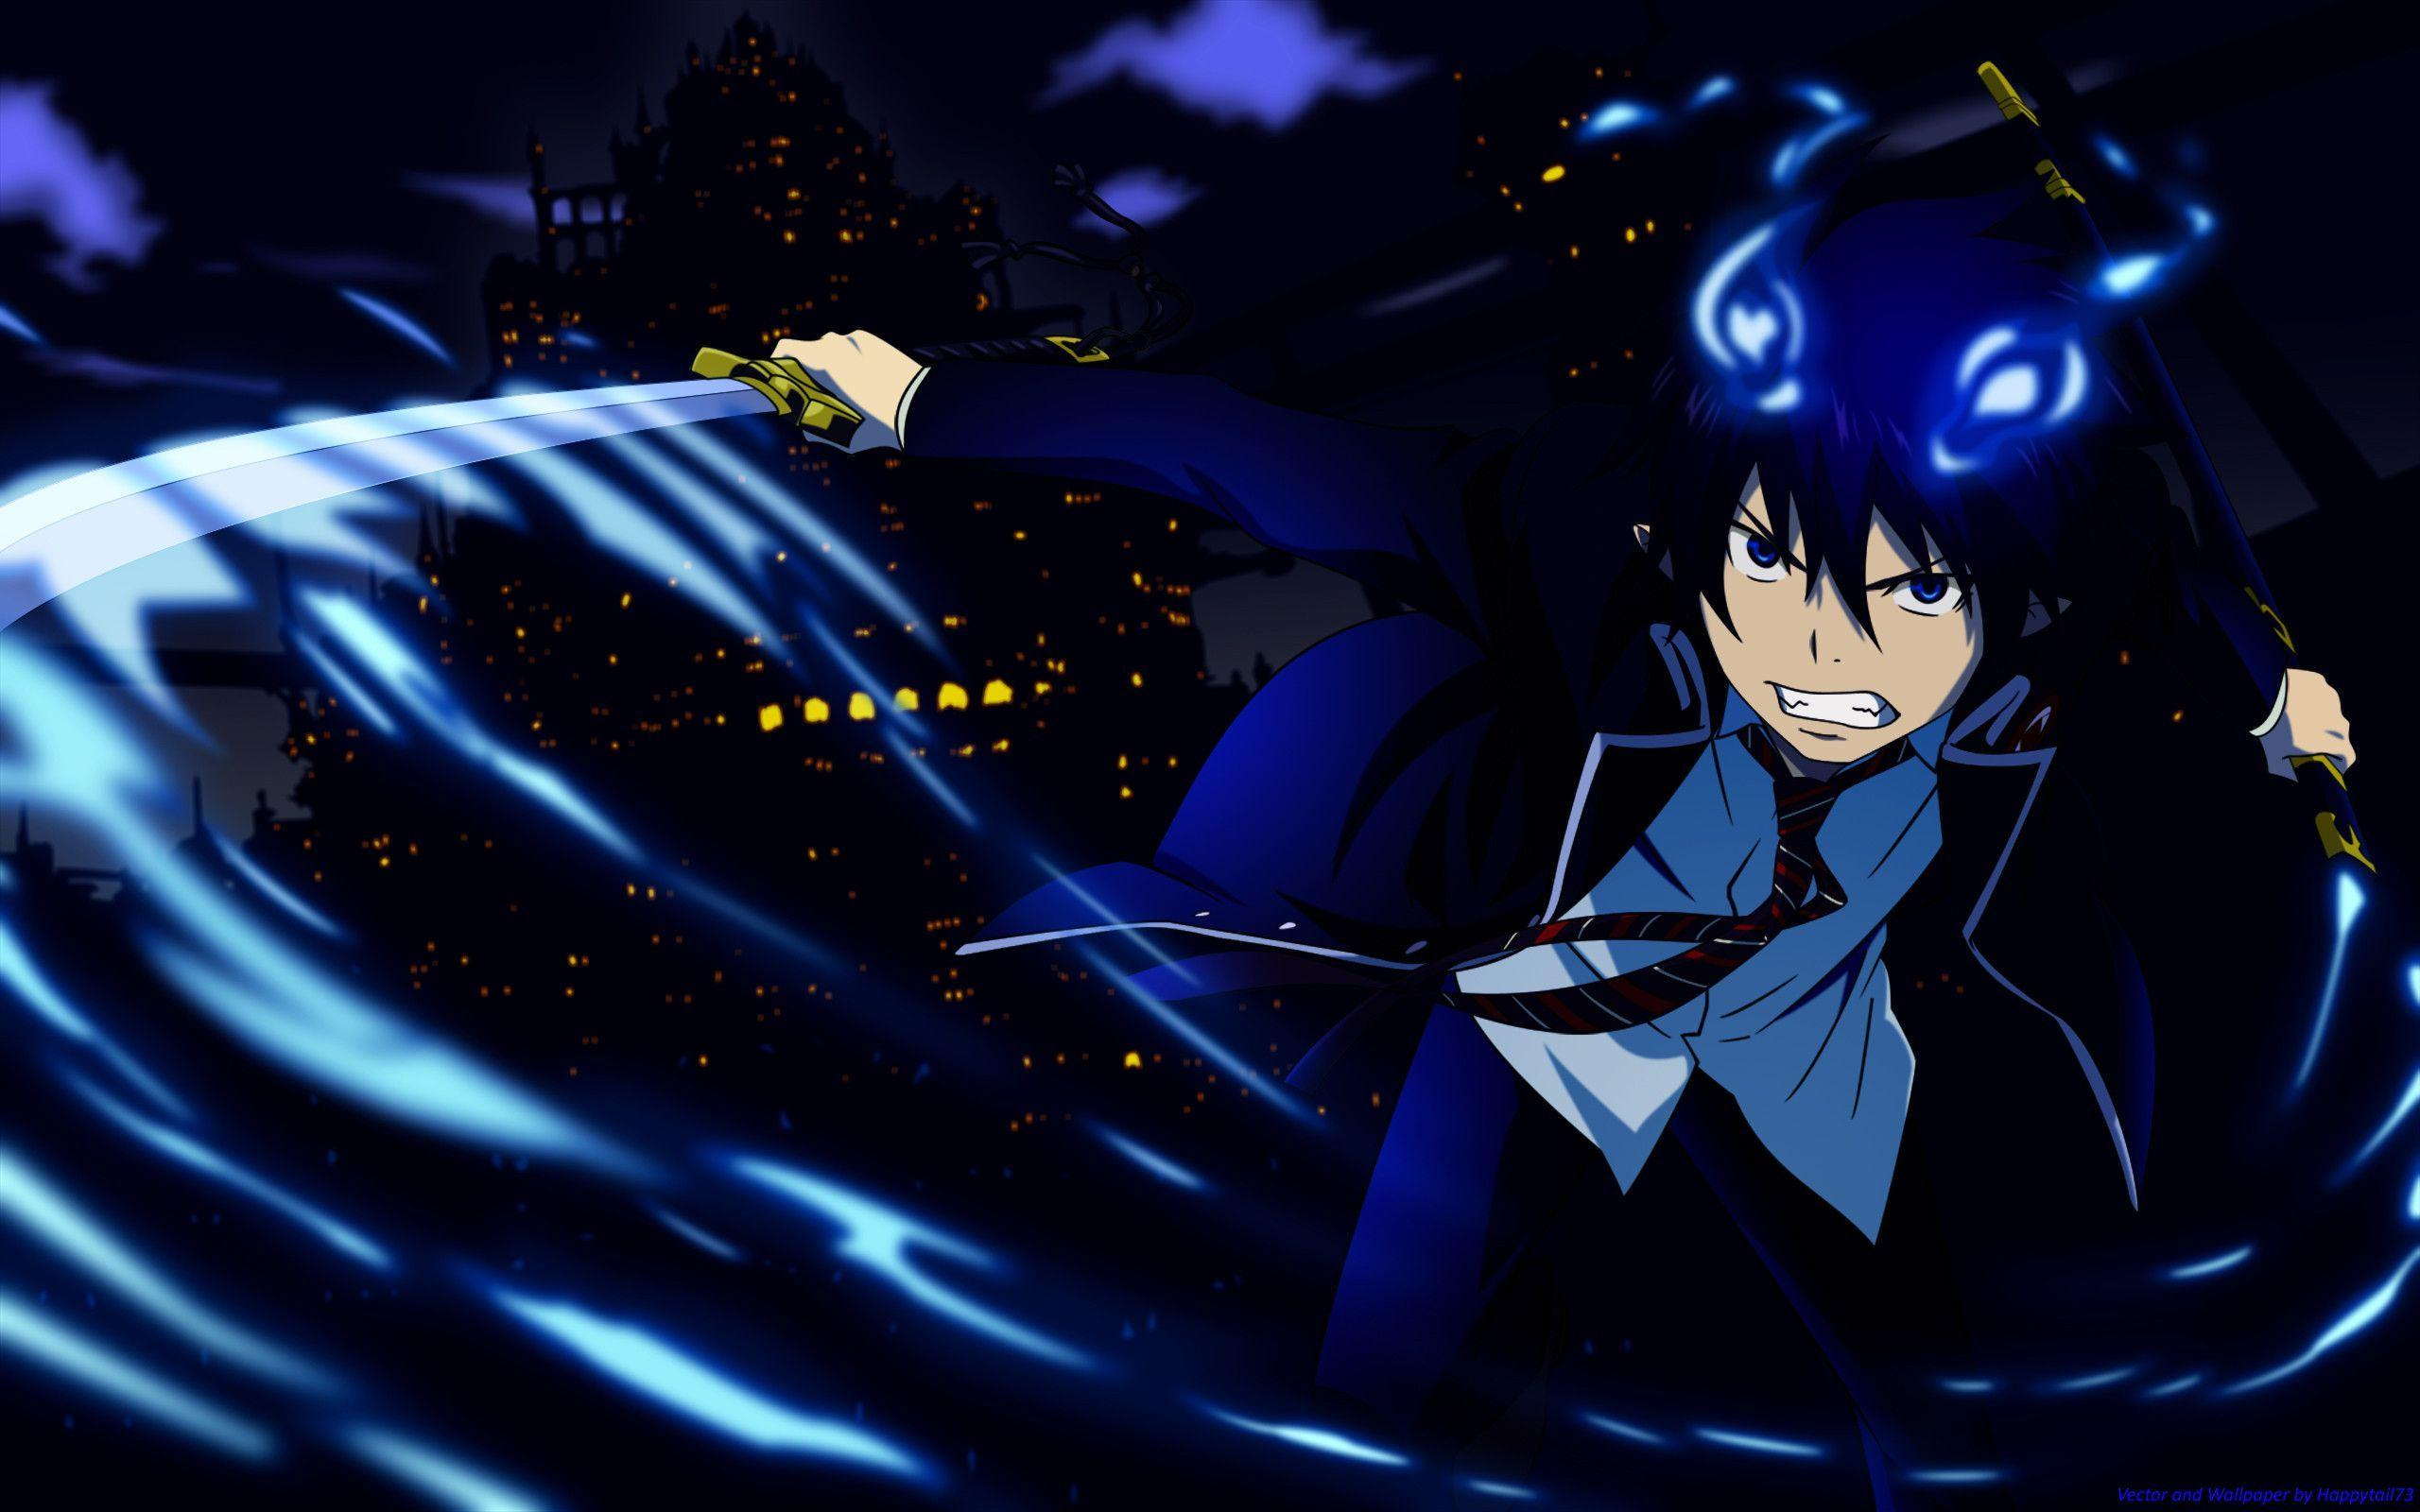 epic blue exorcist wallpaper - photo #29